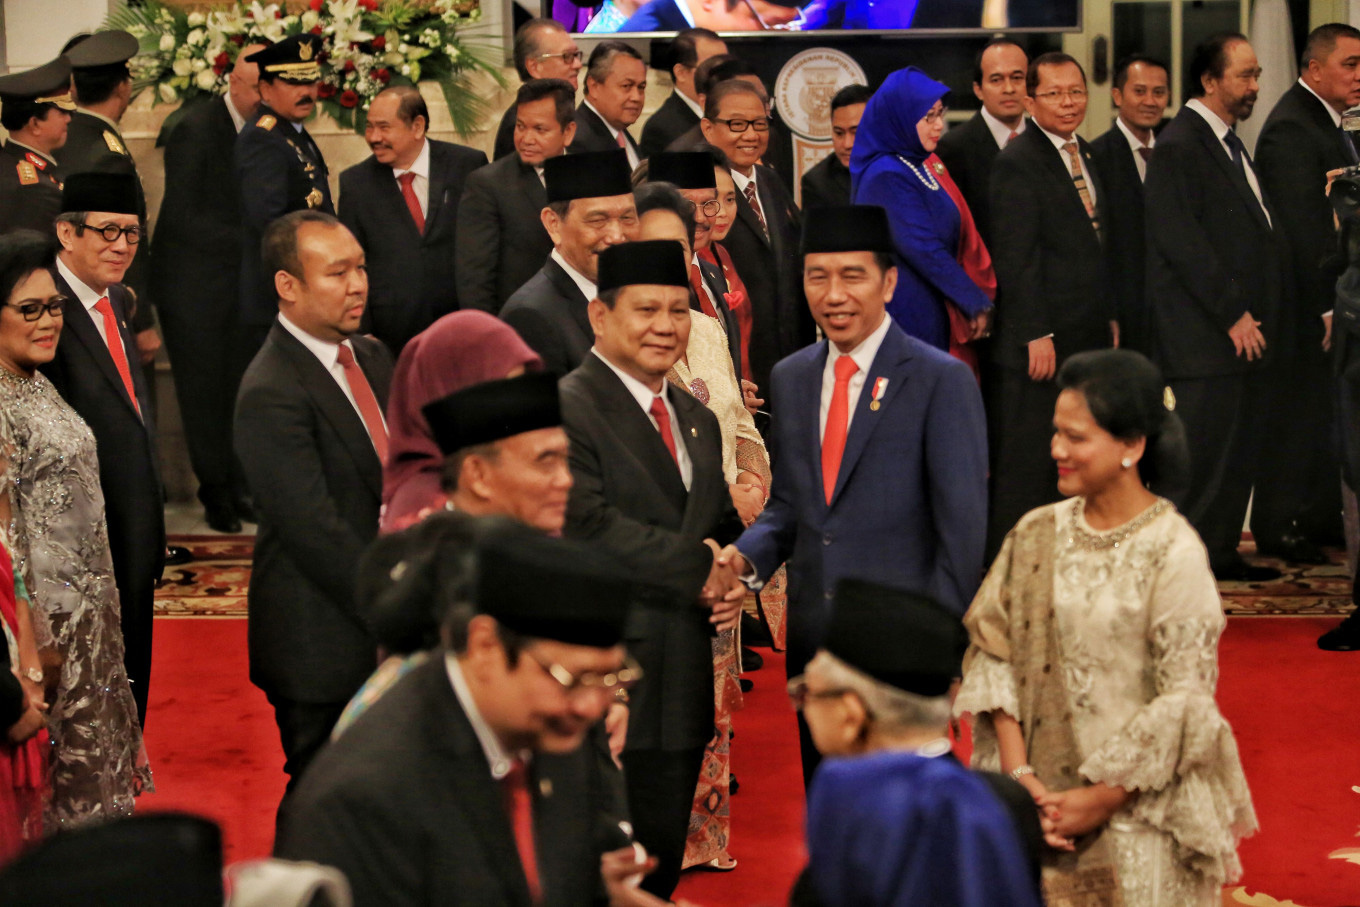 President Jokowi is an outsider, but why is his Cabinet full of insiders?